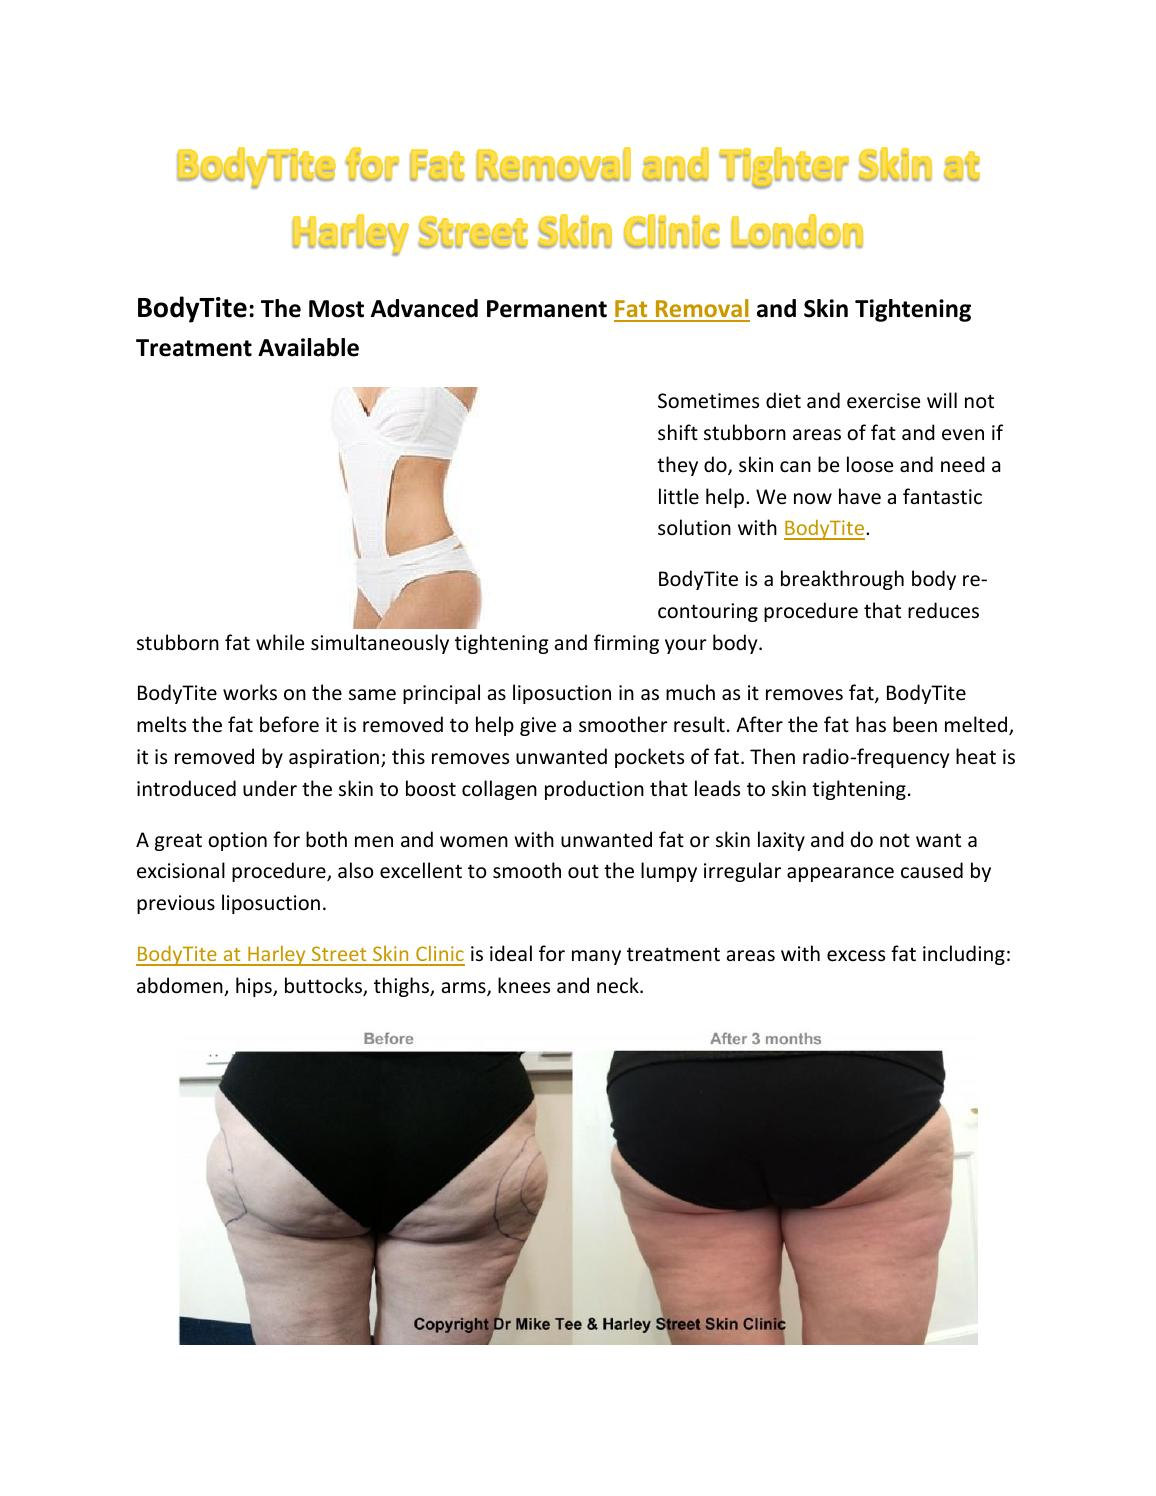 BodyTite for Fat Removal and Tighter Skin at Harley Street